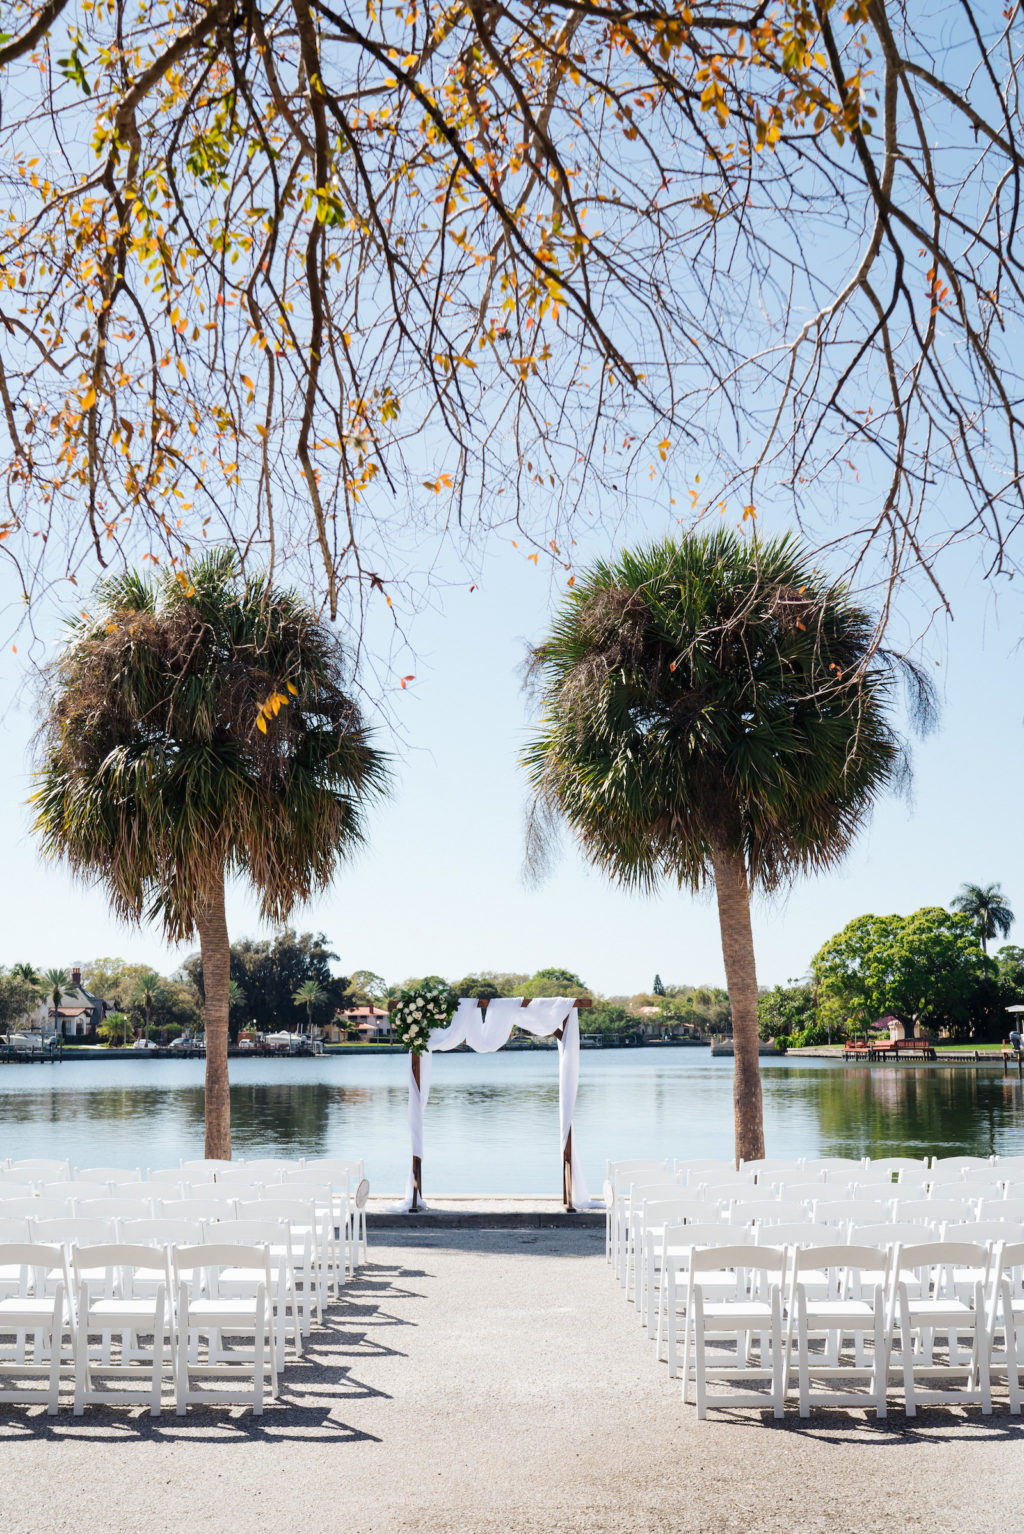 Florida Waterfront Wedding Ceremony, Lakeside Ceremony with Wooden Arch and White Draping | Tampa Bay Wedding Day of Coordinator Special Moments Event Planning | Florida Wedding Venue St. Petersburg Women's Club | Grind & Press Photography